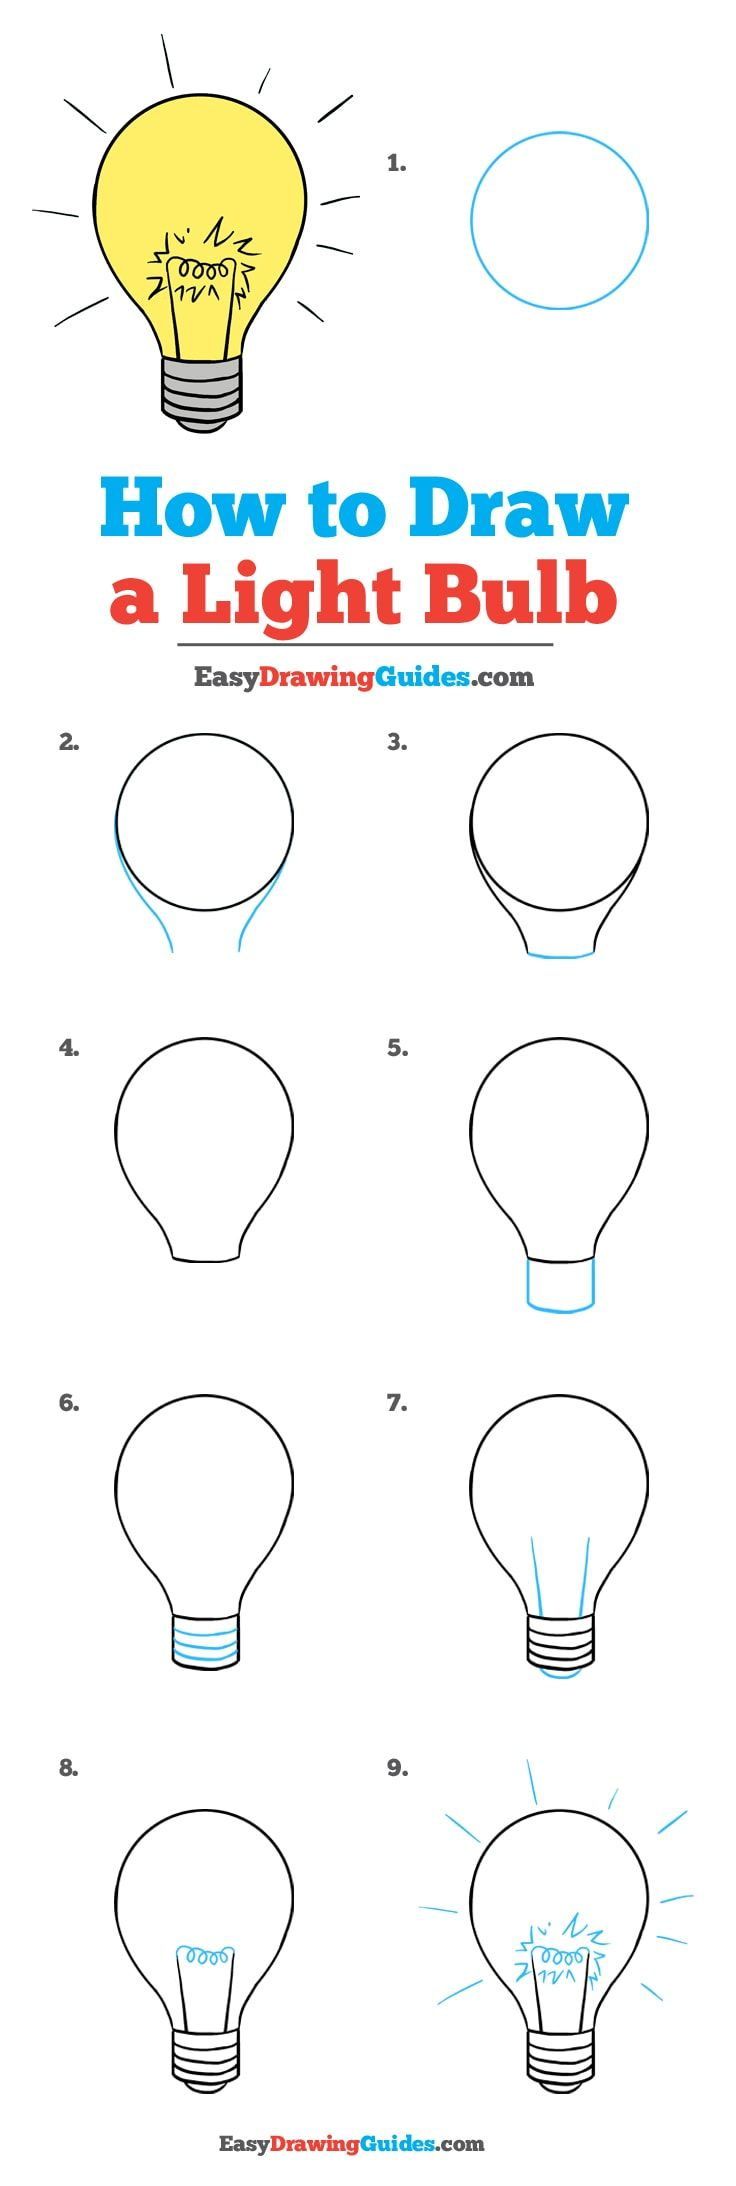 Learn How to Draw a Light Bulb: Easy Step-by-Step Drawing Tutorial for Kids and Beginners. #Light Bulb #DrawingTutorial #EasyDrawing See the full tutorial at https://easydrawingguides.com/draw-light-bulb/.